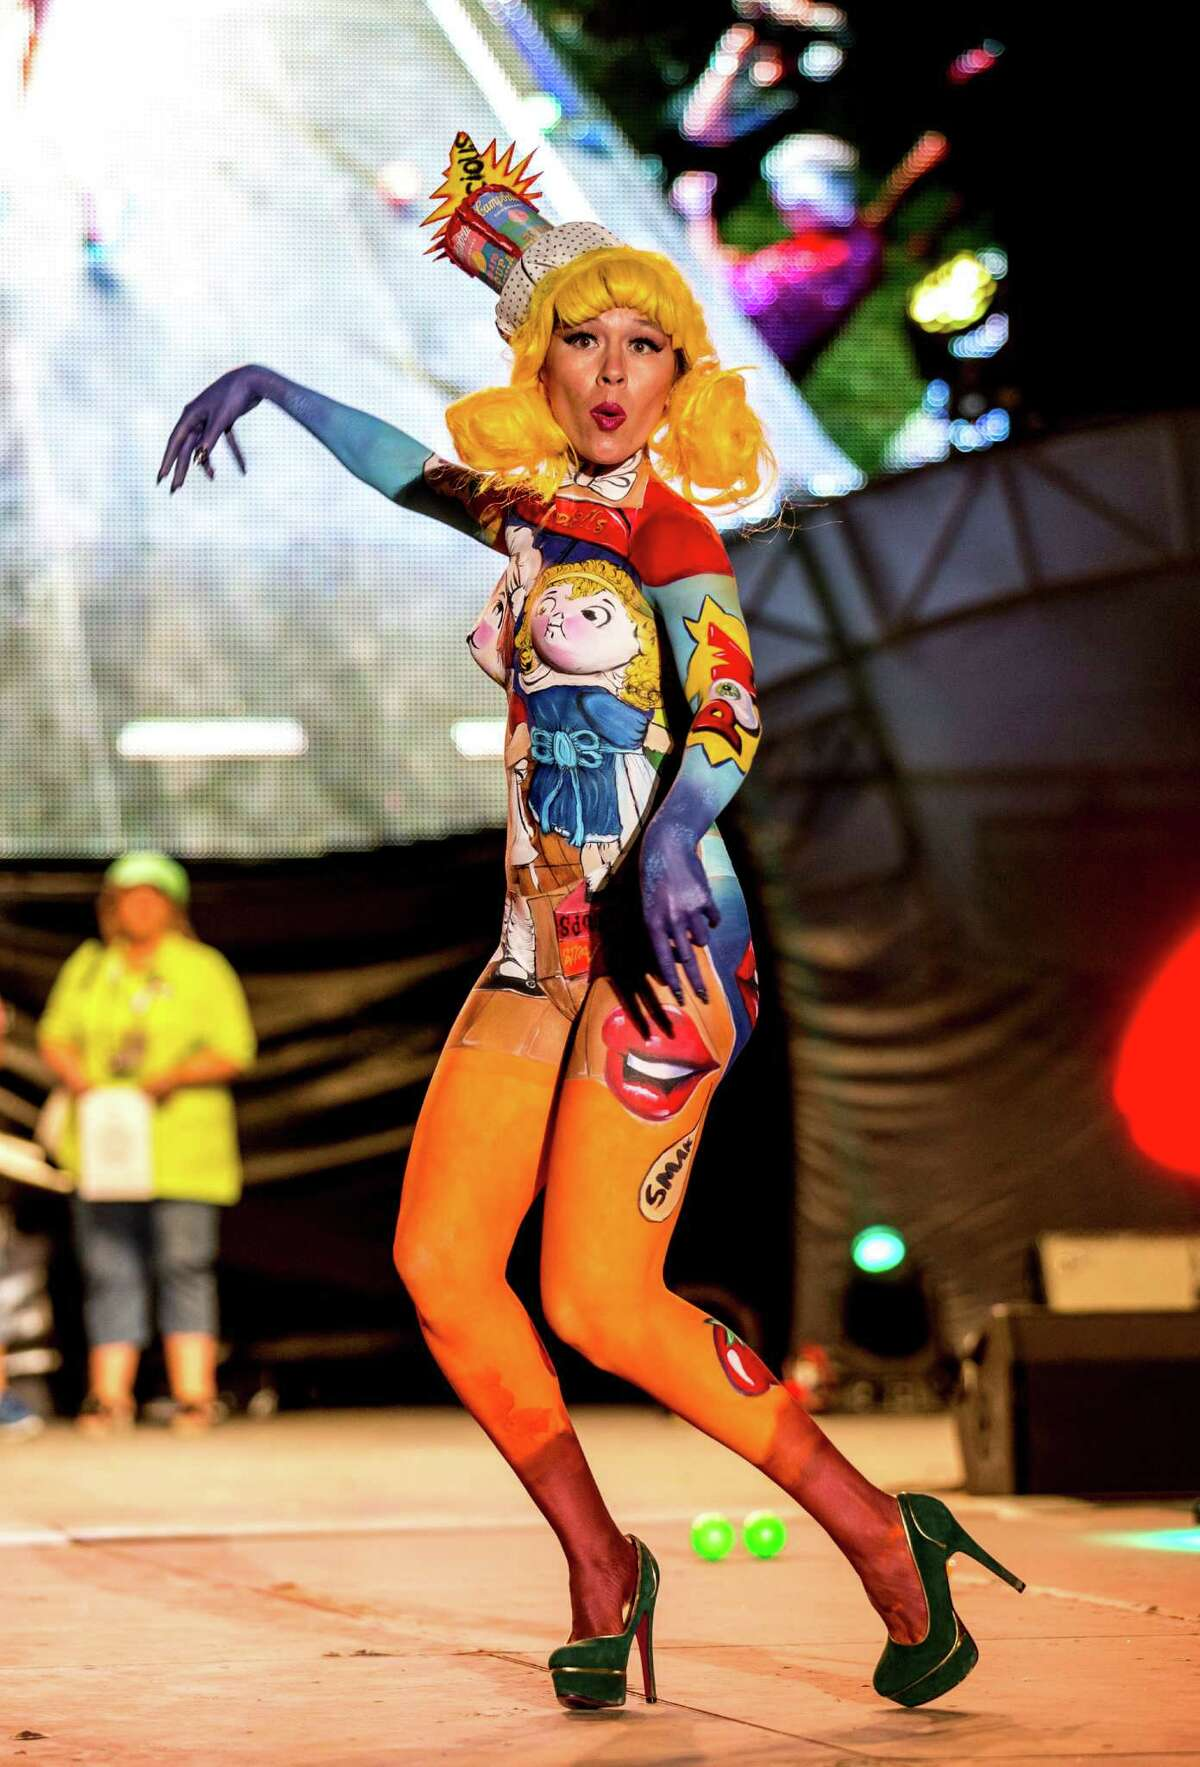 A model poses at the World Bodypainting Festival 2014 on July 4, 2014 in Poertschach am Woerthersee, Austria.